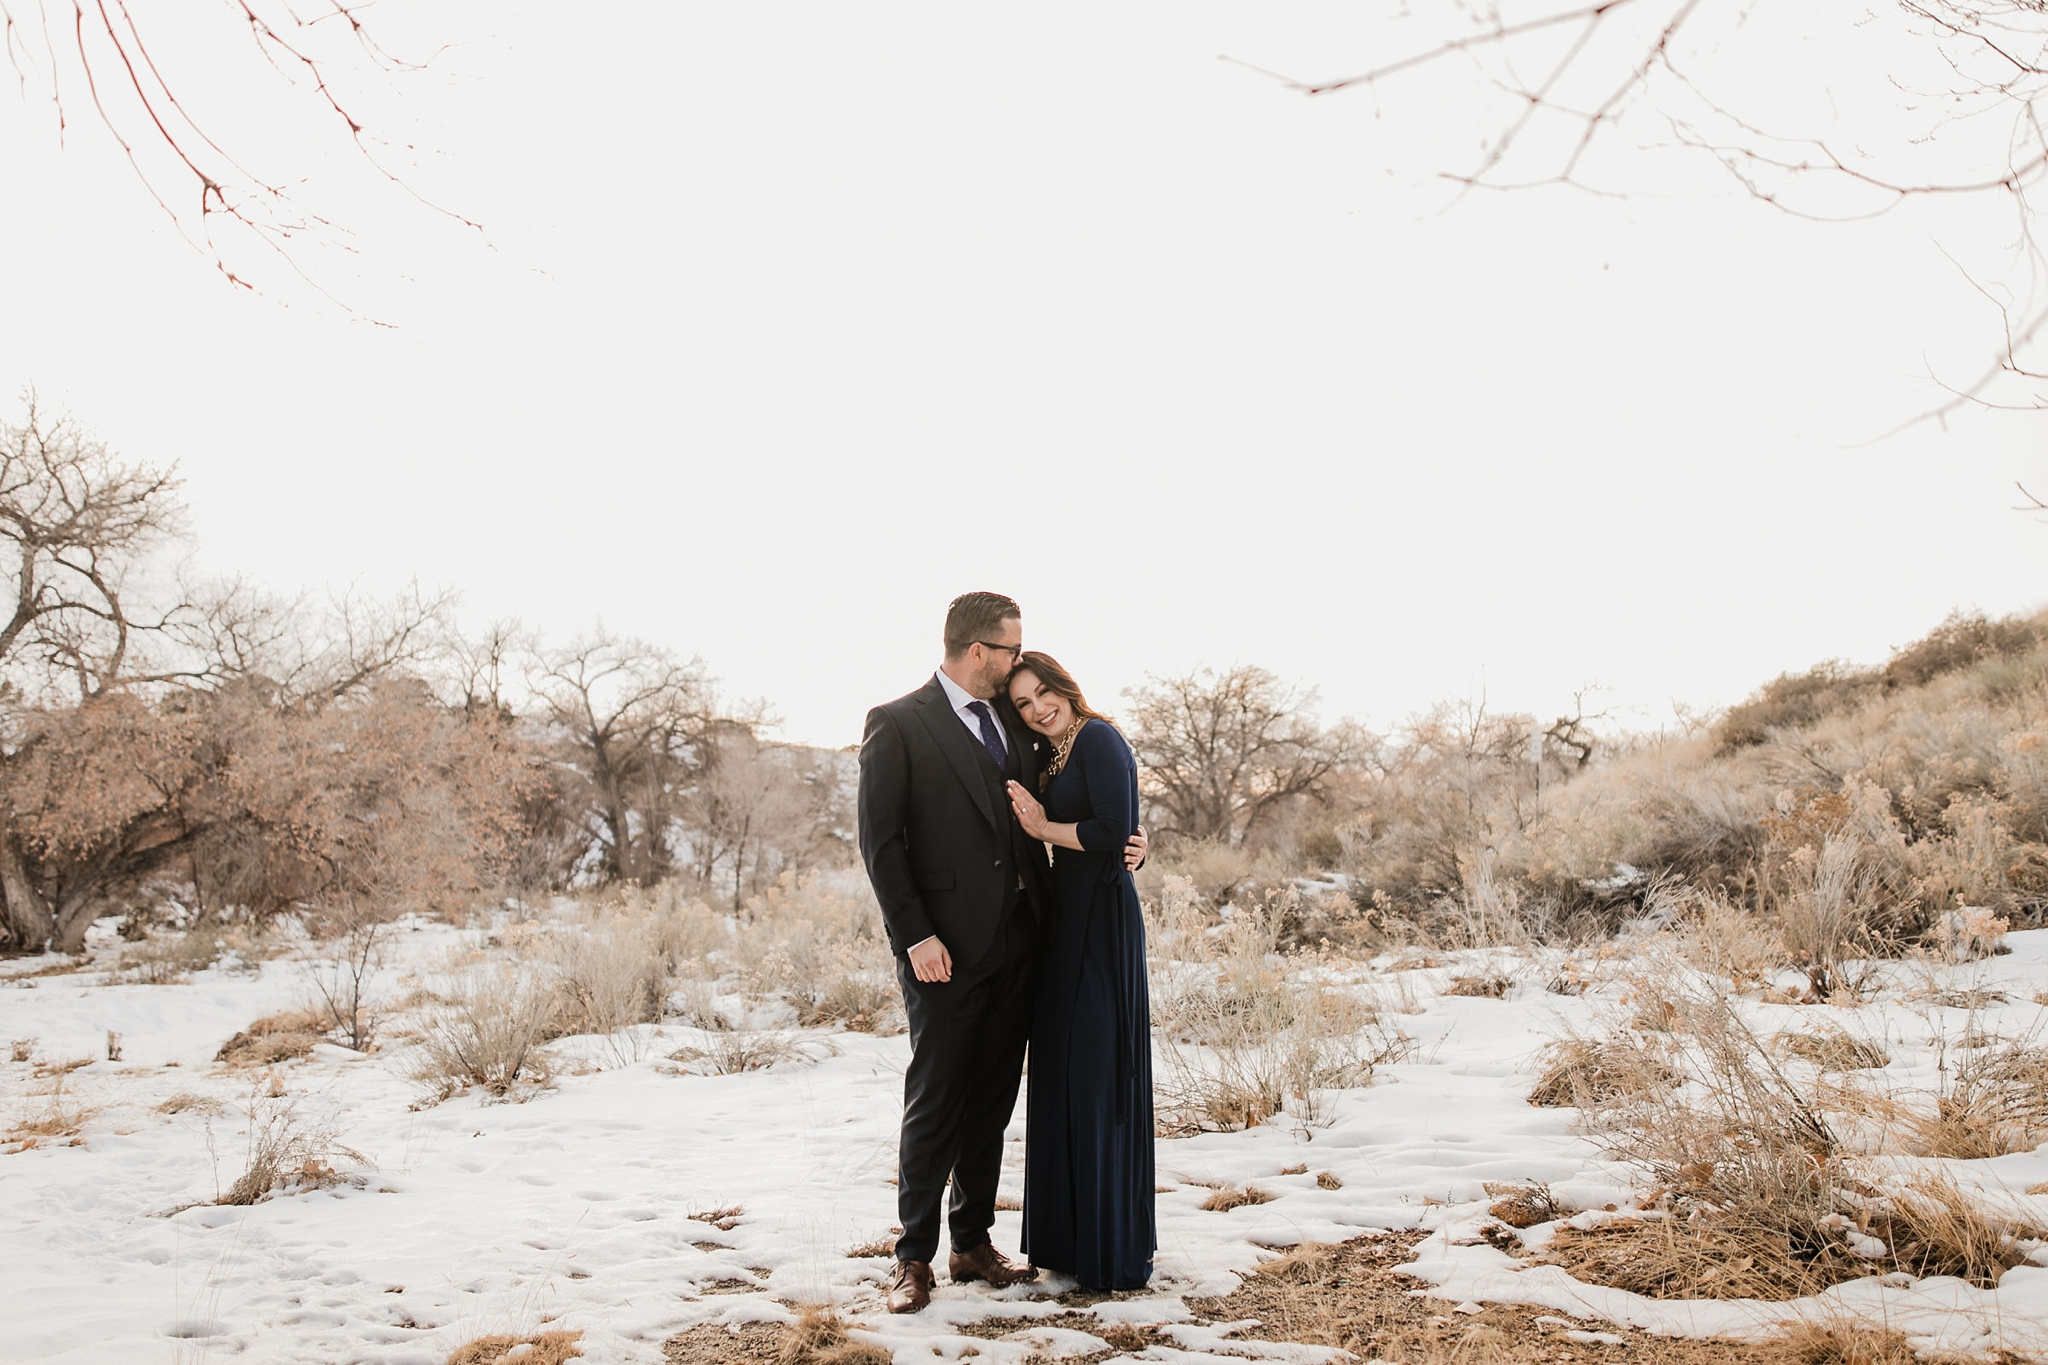 Alicia+lucia+photography+-+albuquerque+wedding+photographer+-+santa+fe+wedding+photography+-+new+mexico+wedding+photographer+-+new+mexico+wedding+-+engagement+-+winter+engagement+-+albuquerque+engagement_0004.jpg